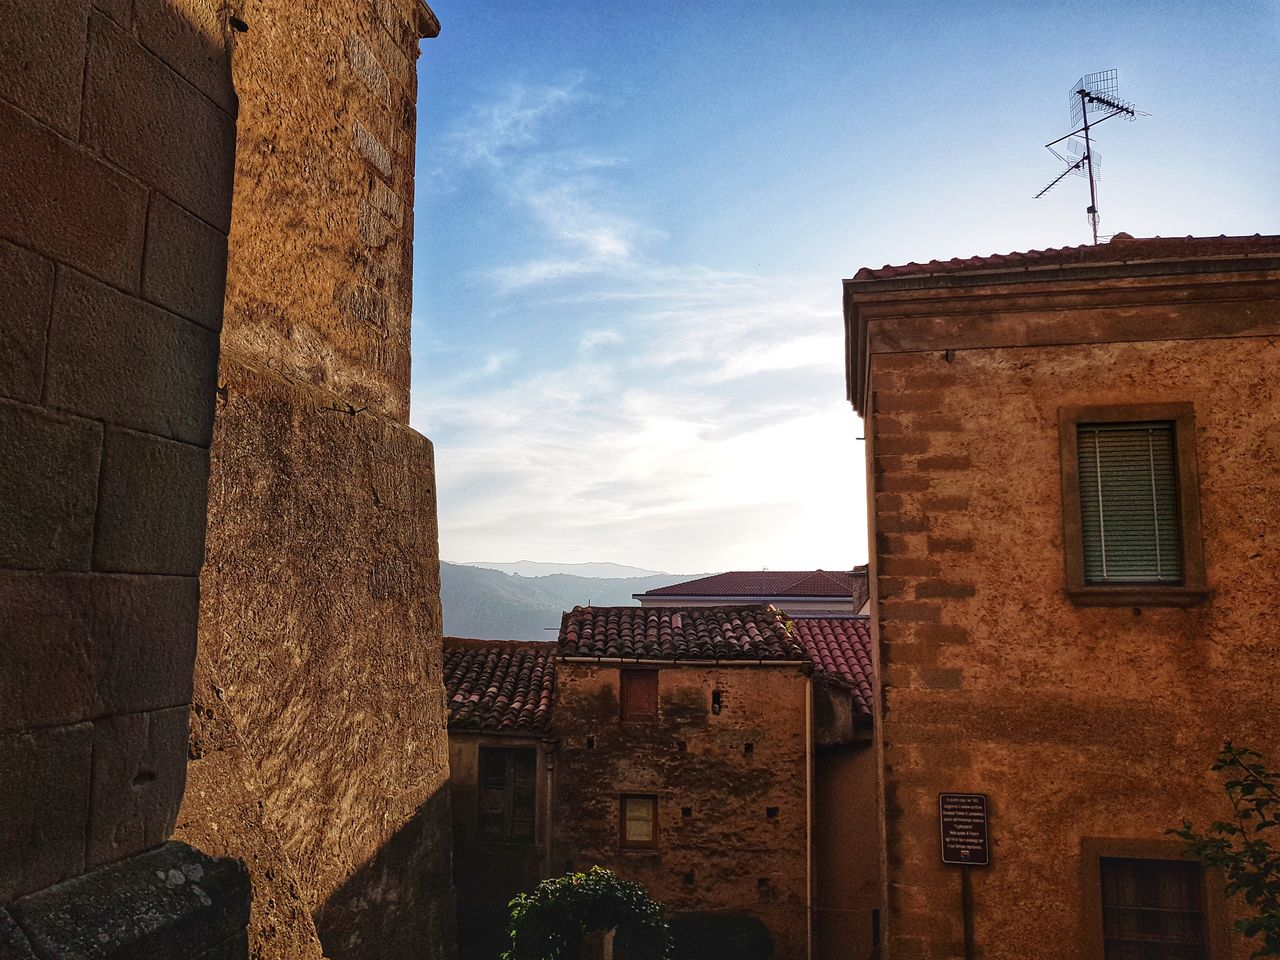 architecture, built structure, building exterior, building, sky, cloud - sky, nature, no people, residential district, low angle view, day, window, outdoors, old, house, wall, history, city, wall - building feature, the past, stone wall